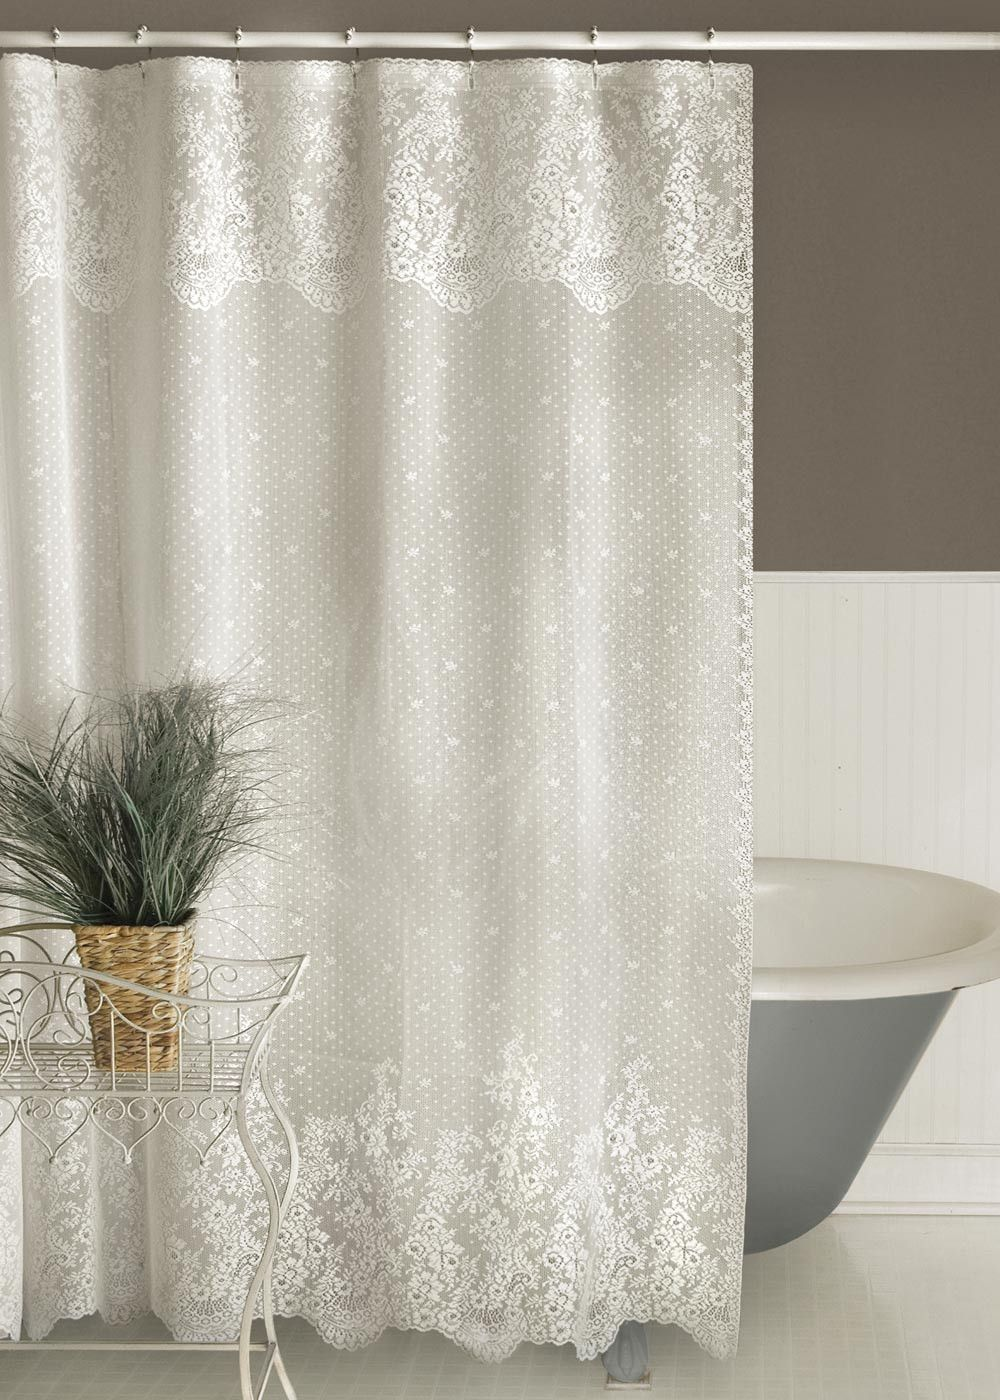 Heritage Lace SHOWER CURTAIN Floret 72x72 ECRU Made in USA | Lace ...